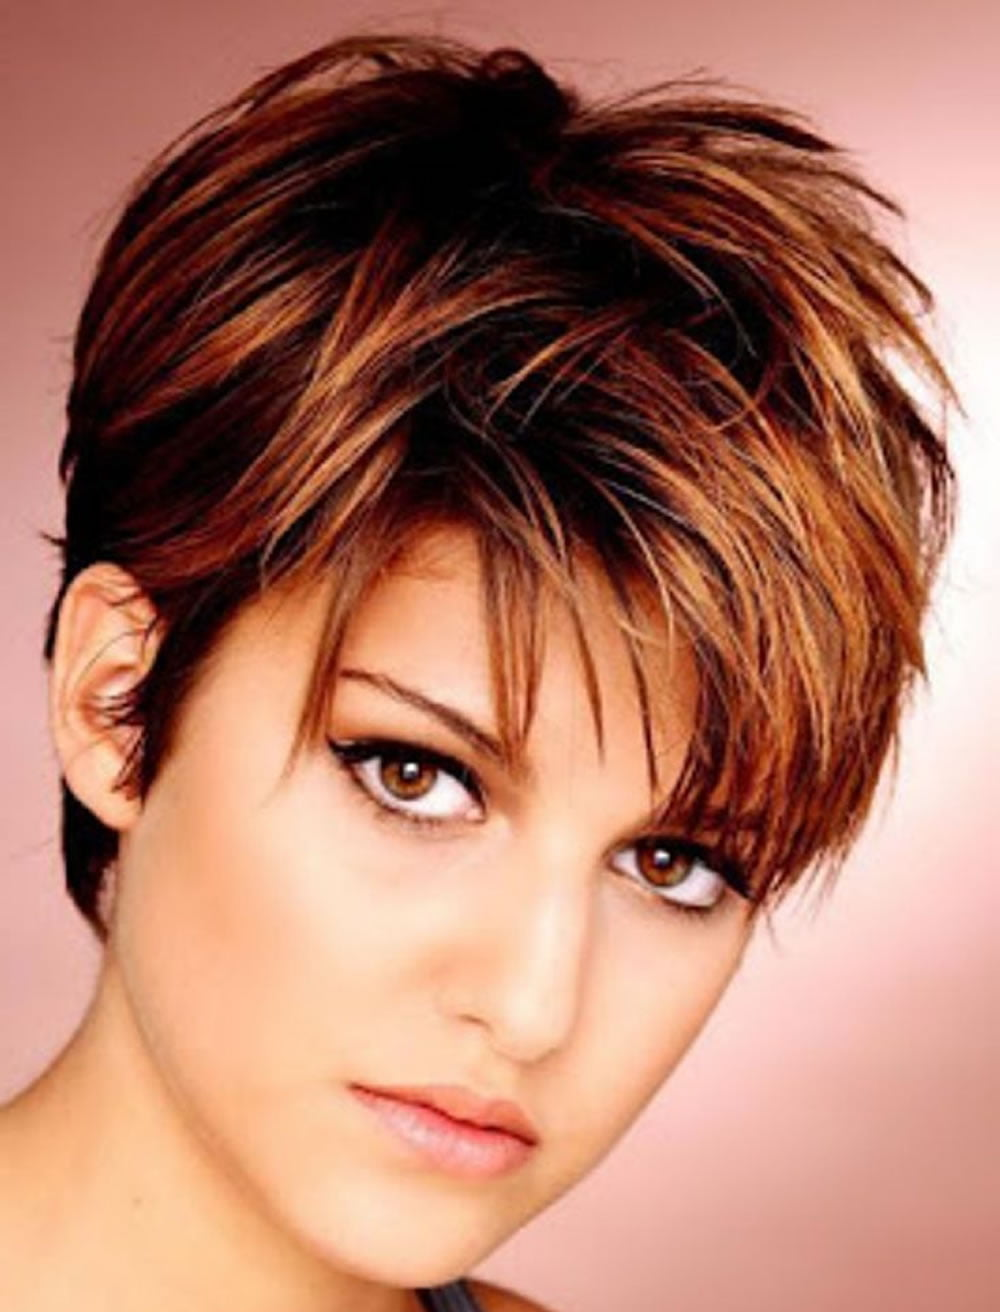 Most Preferred Pixie Haircuts For Short Hair 2018-2019 – Page 8 ...